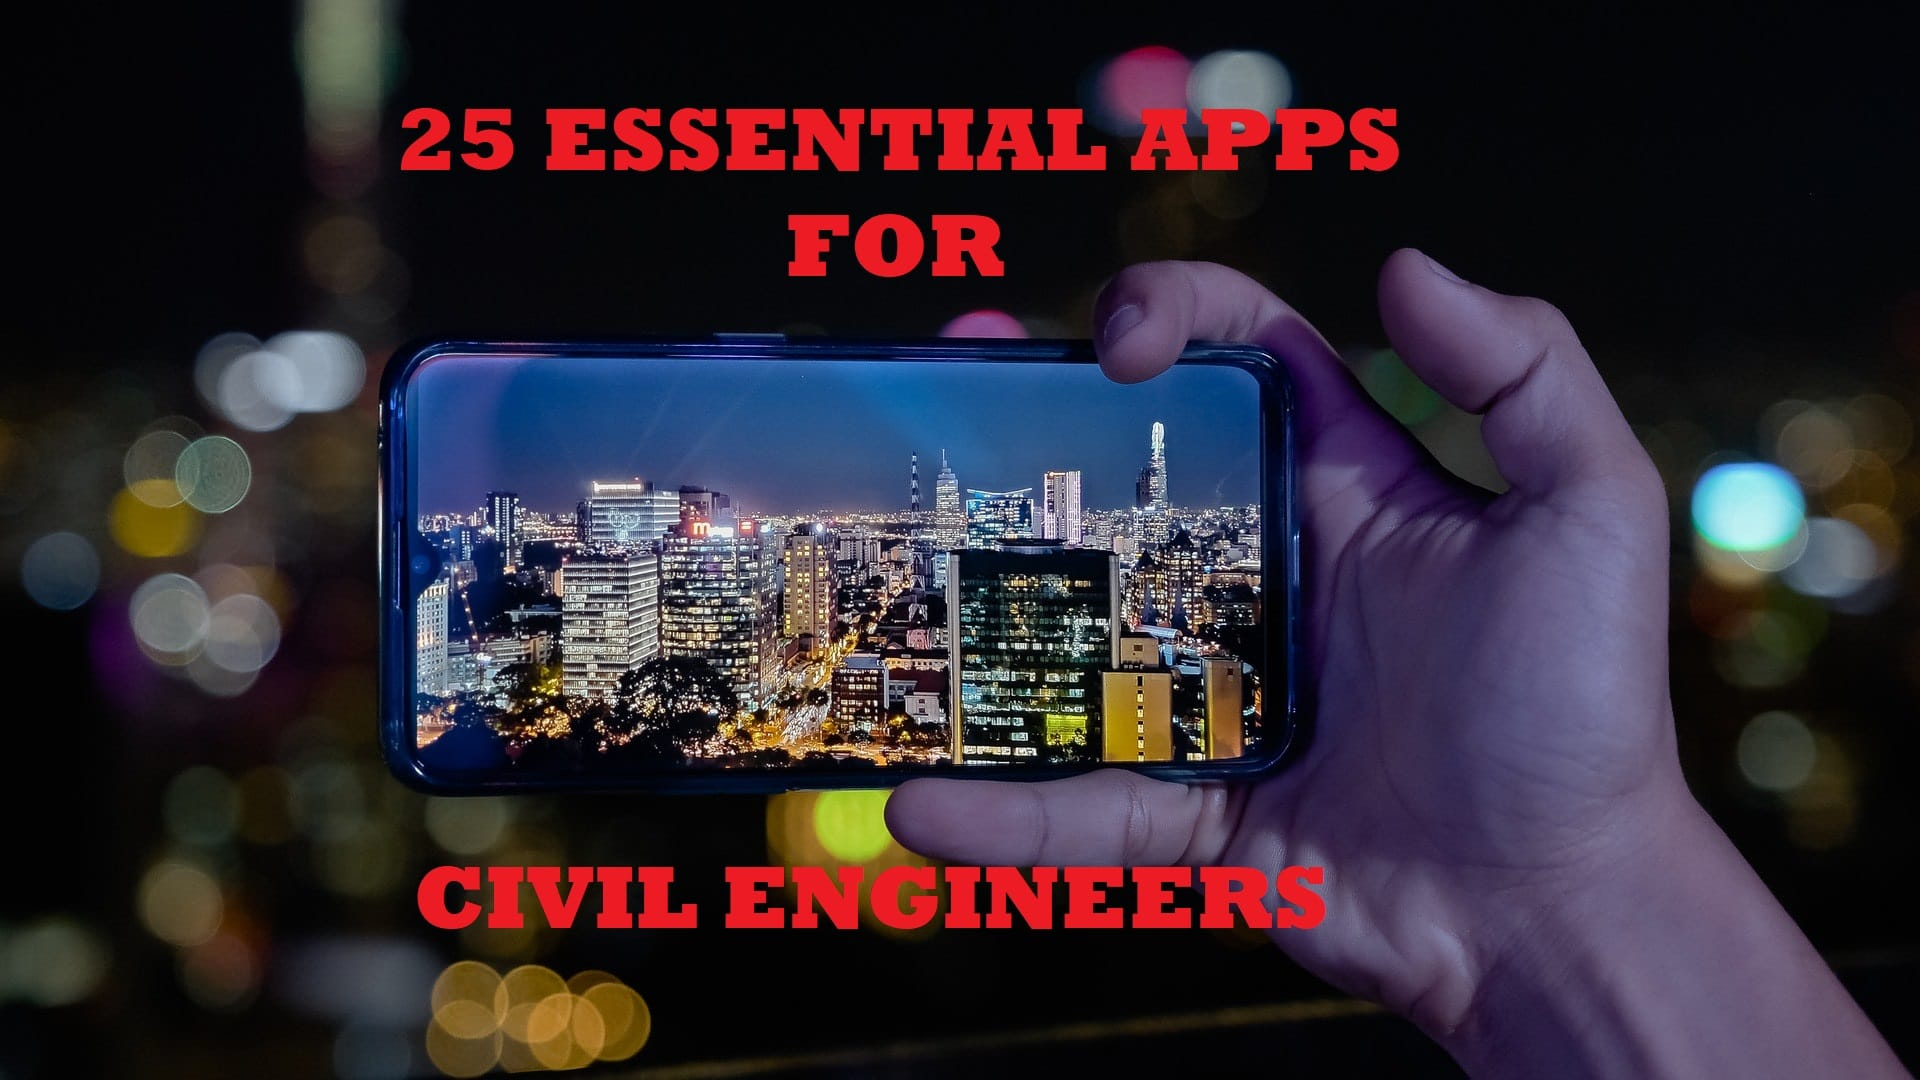 25 Essential Apps for Civil Engineers